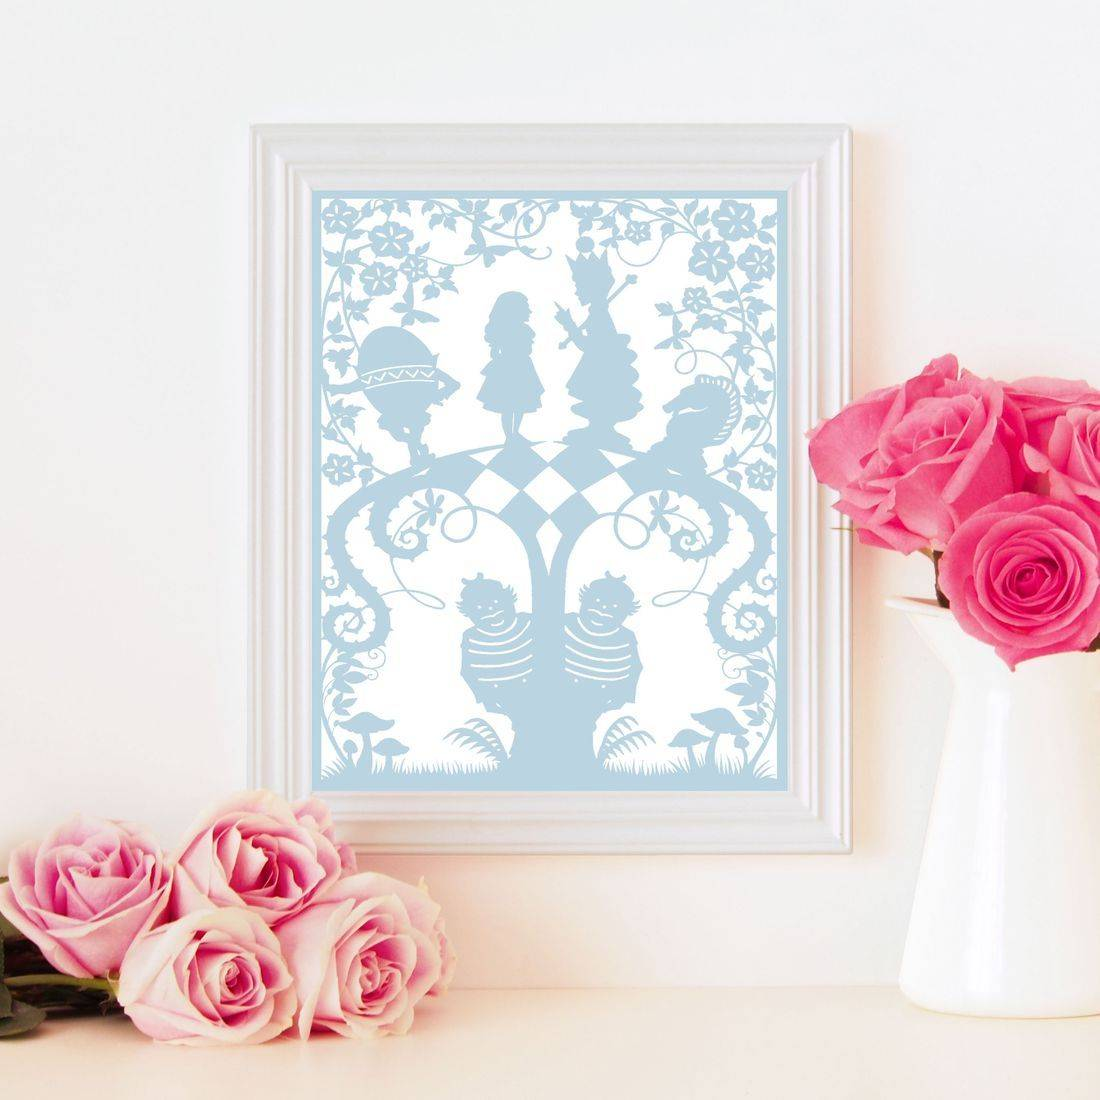 through the looking glass, crafting template, svg, studio, jpeg, bramble crafts